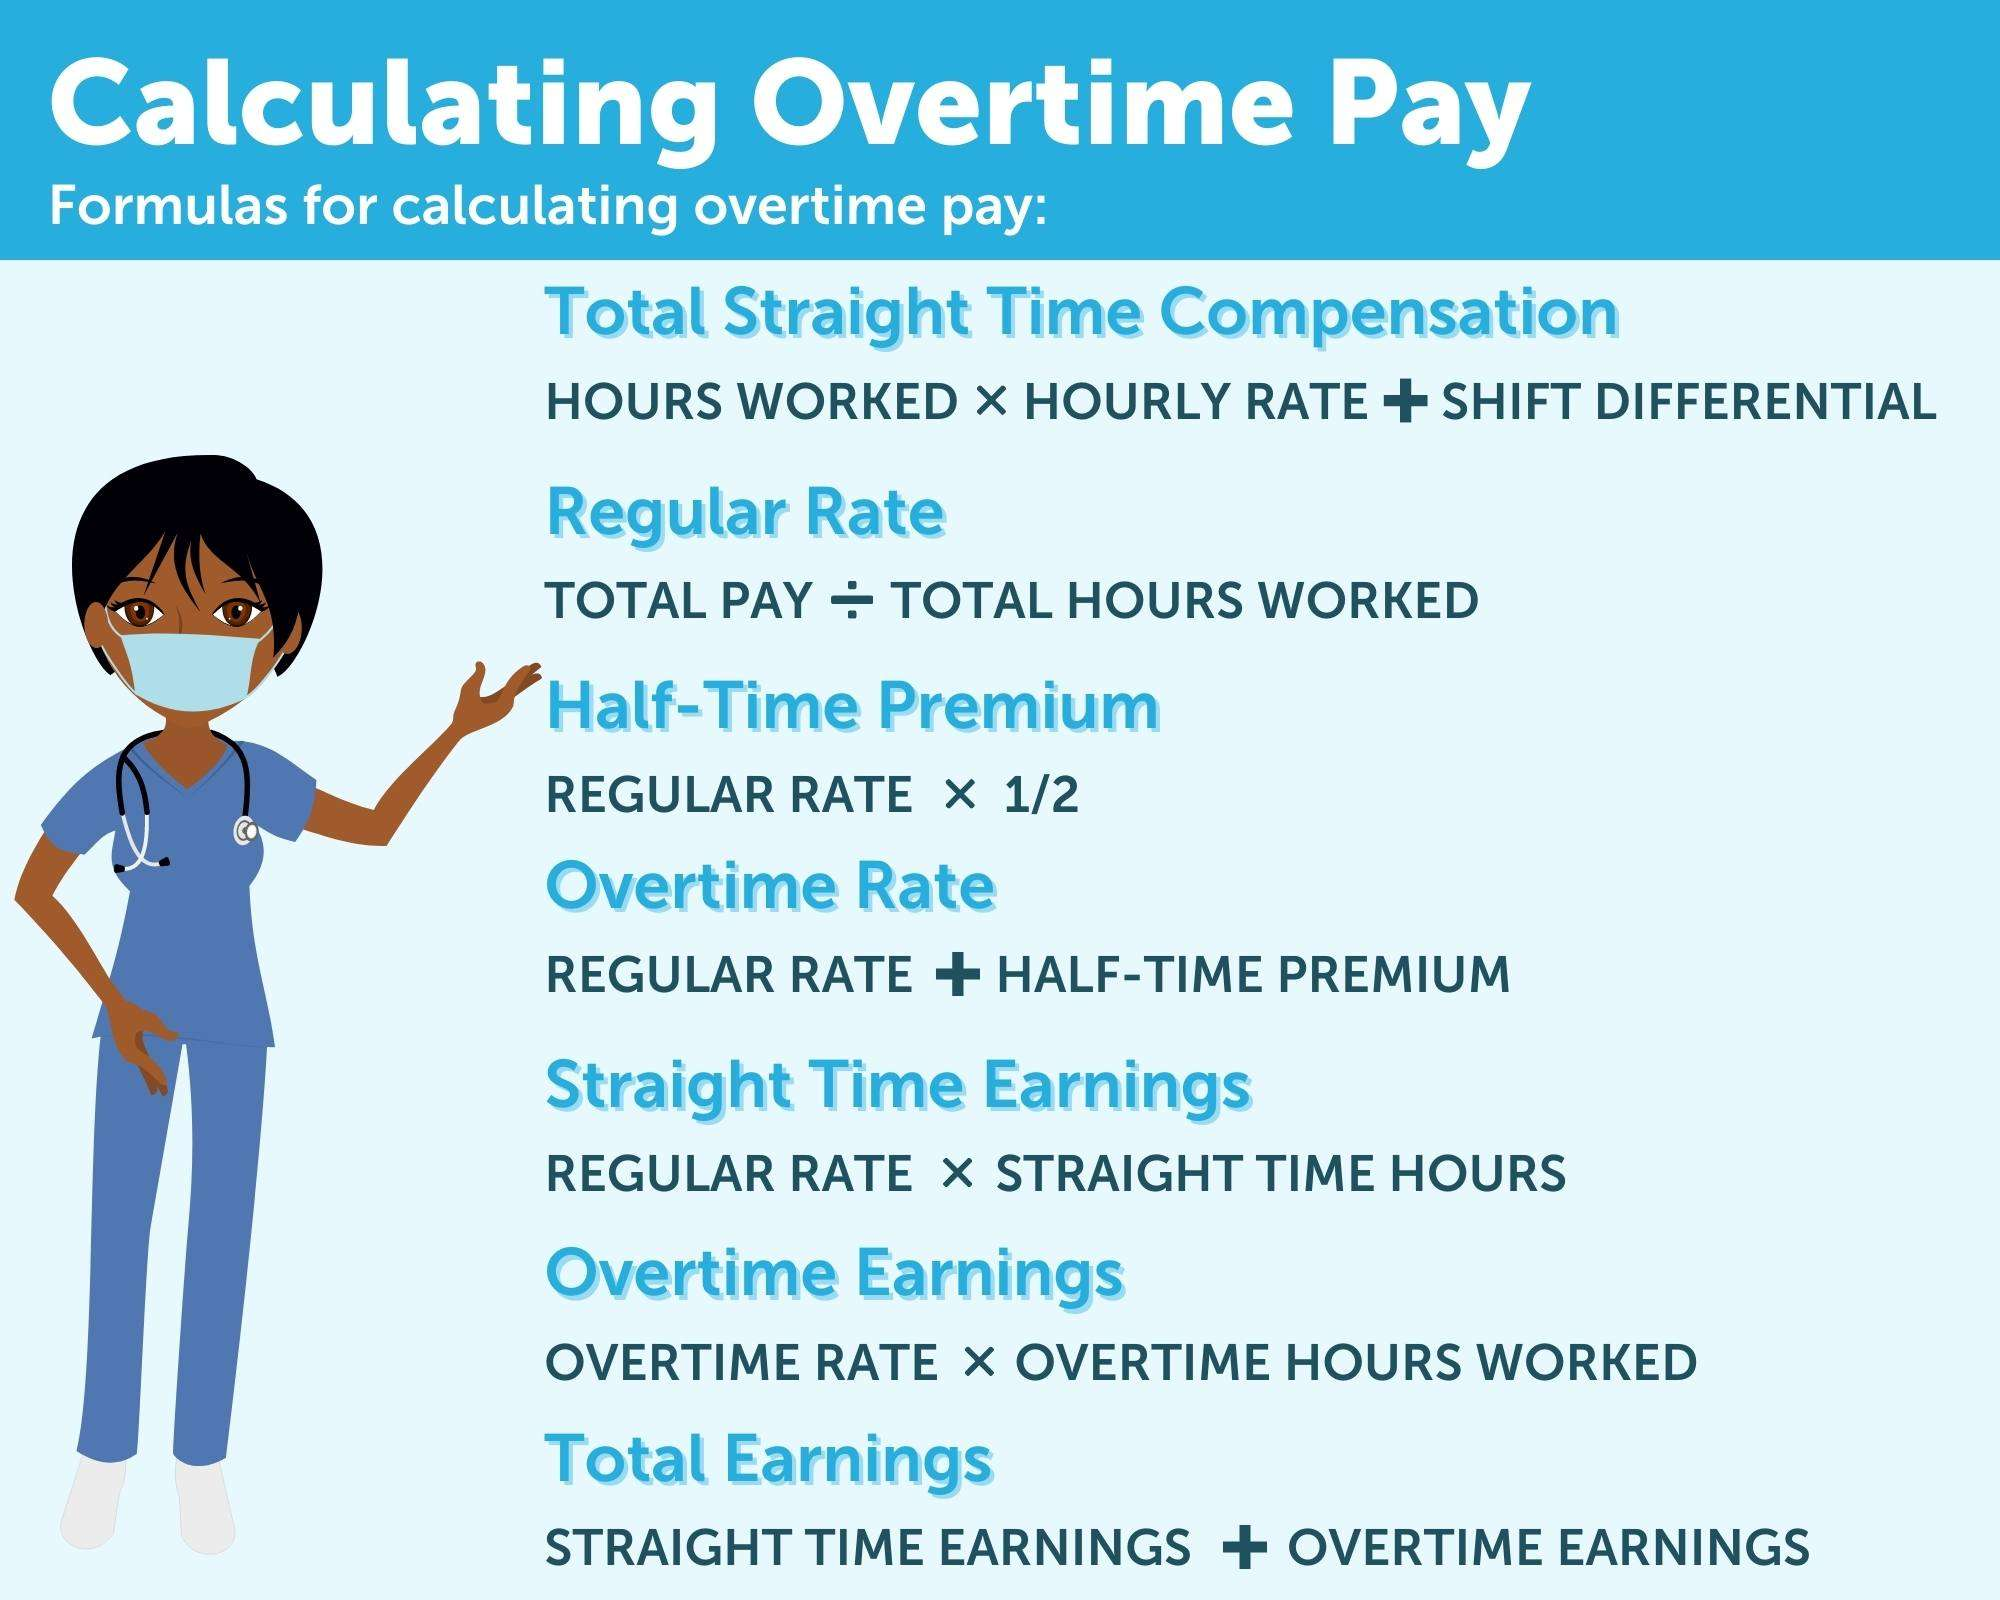 Calculating Overtime Pay Formulas